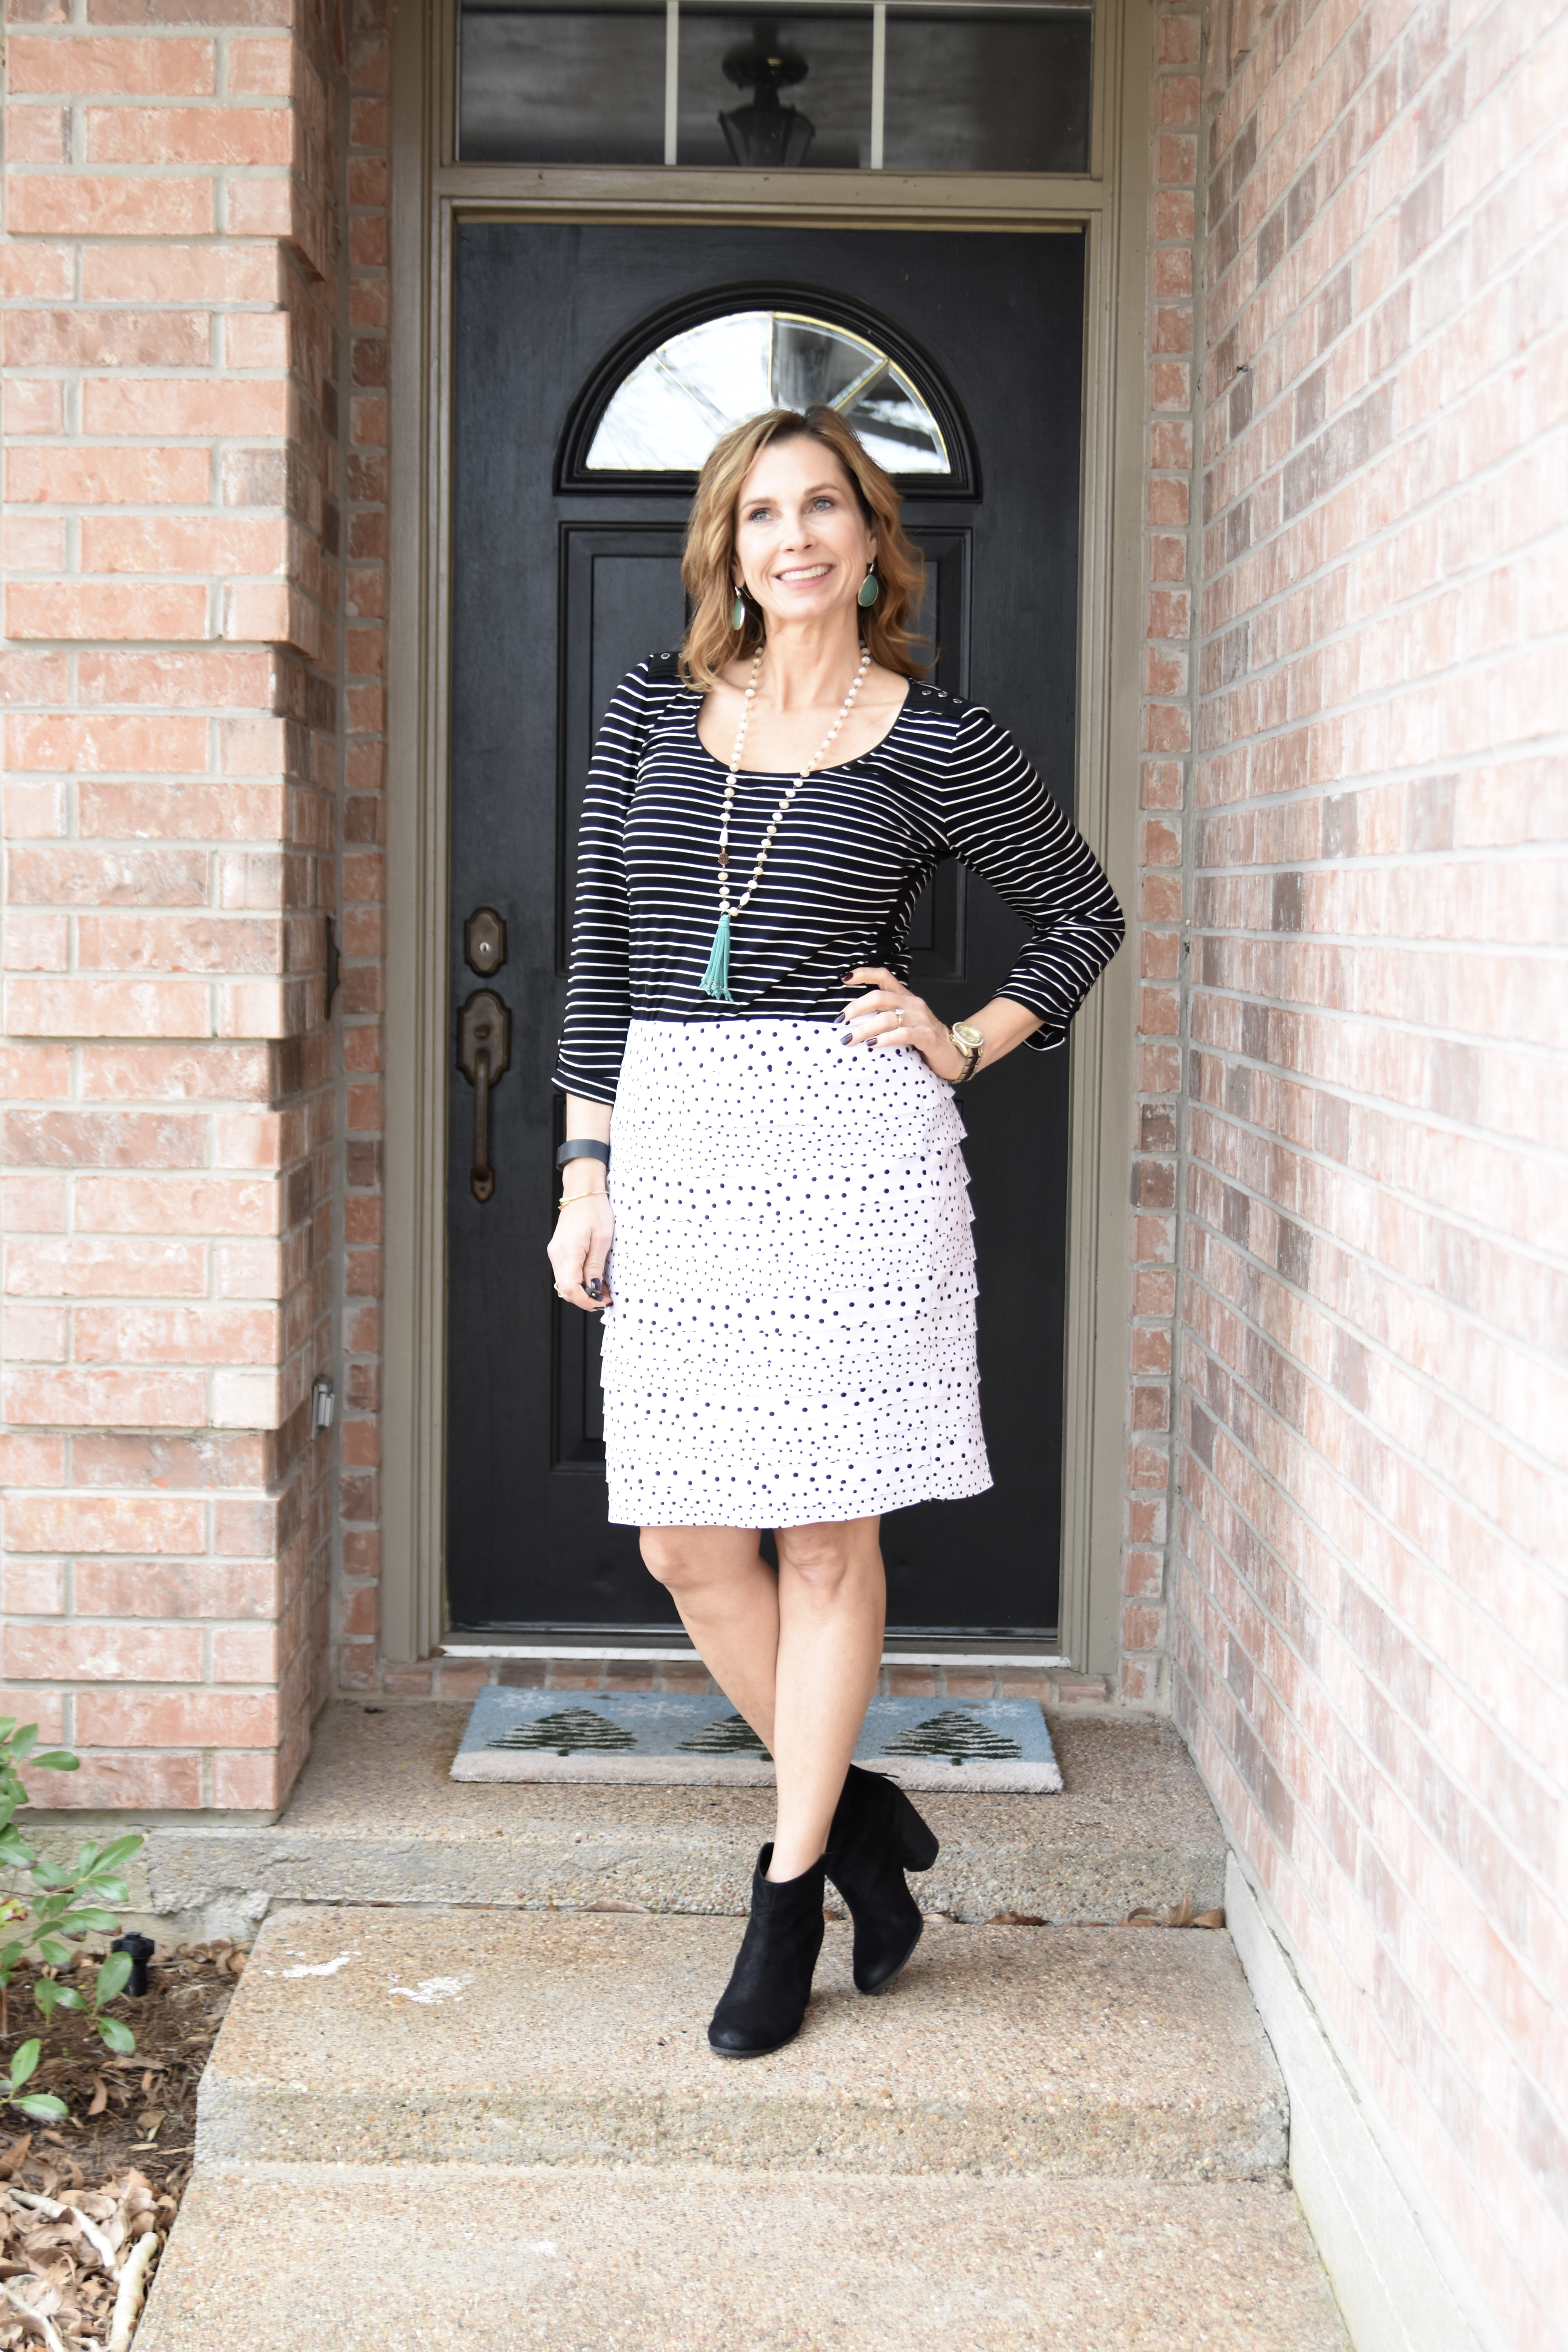 Fashion Blogger, Shelley Janac mixes stripes and polka dots